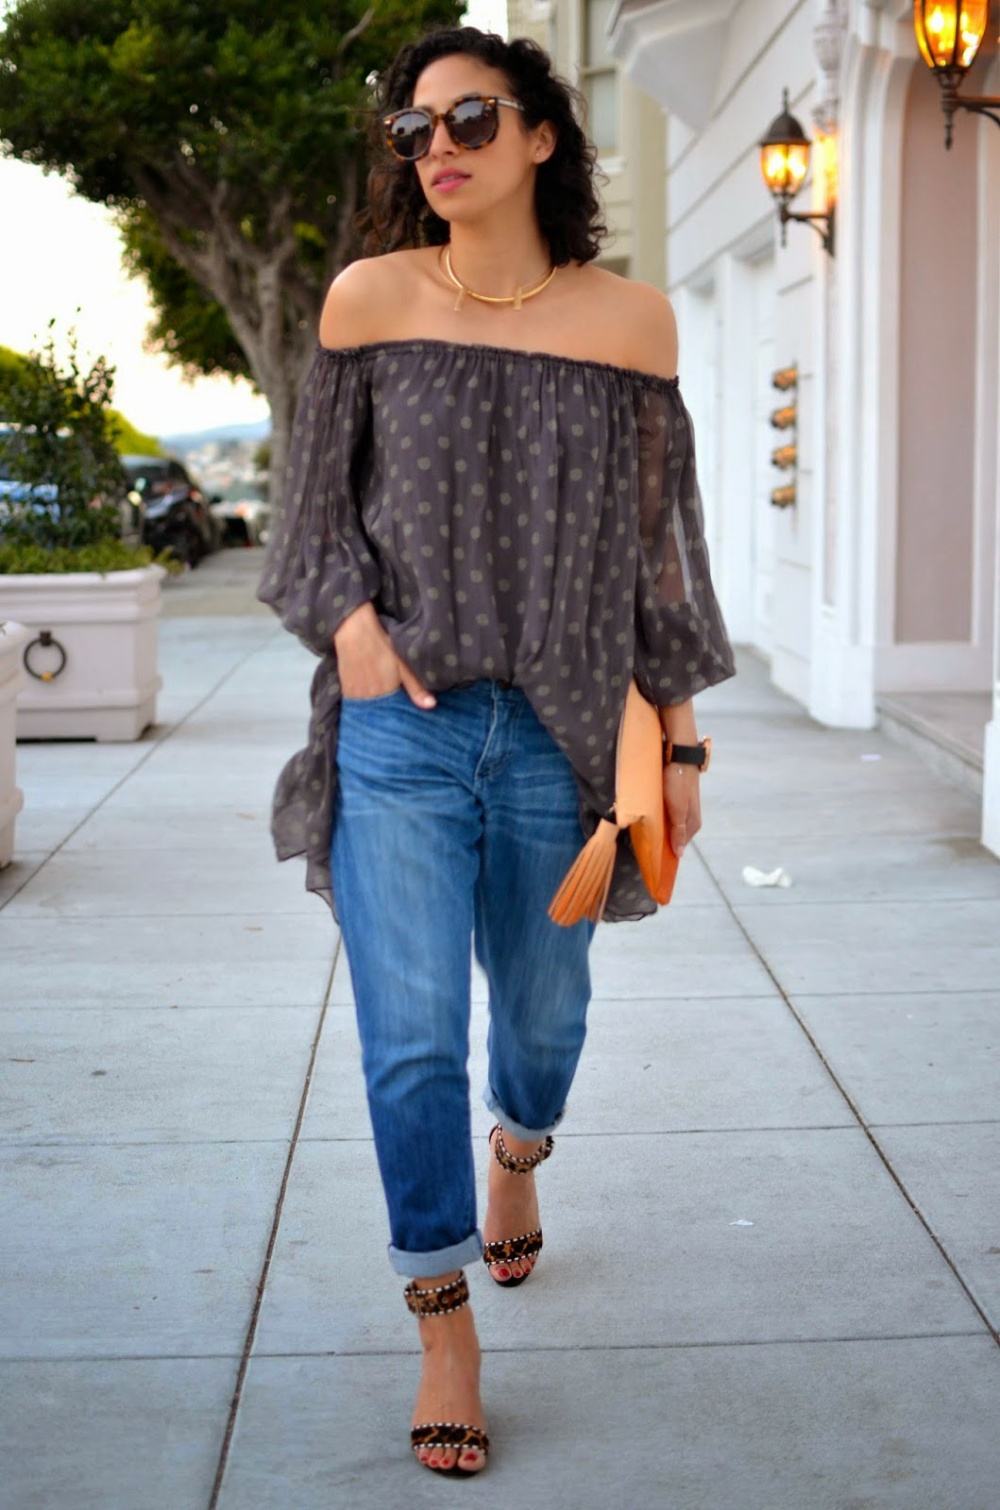 Off-Shoulders-Best-Street-Style-Looks-8